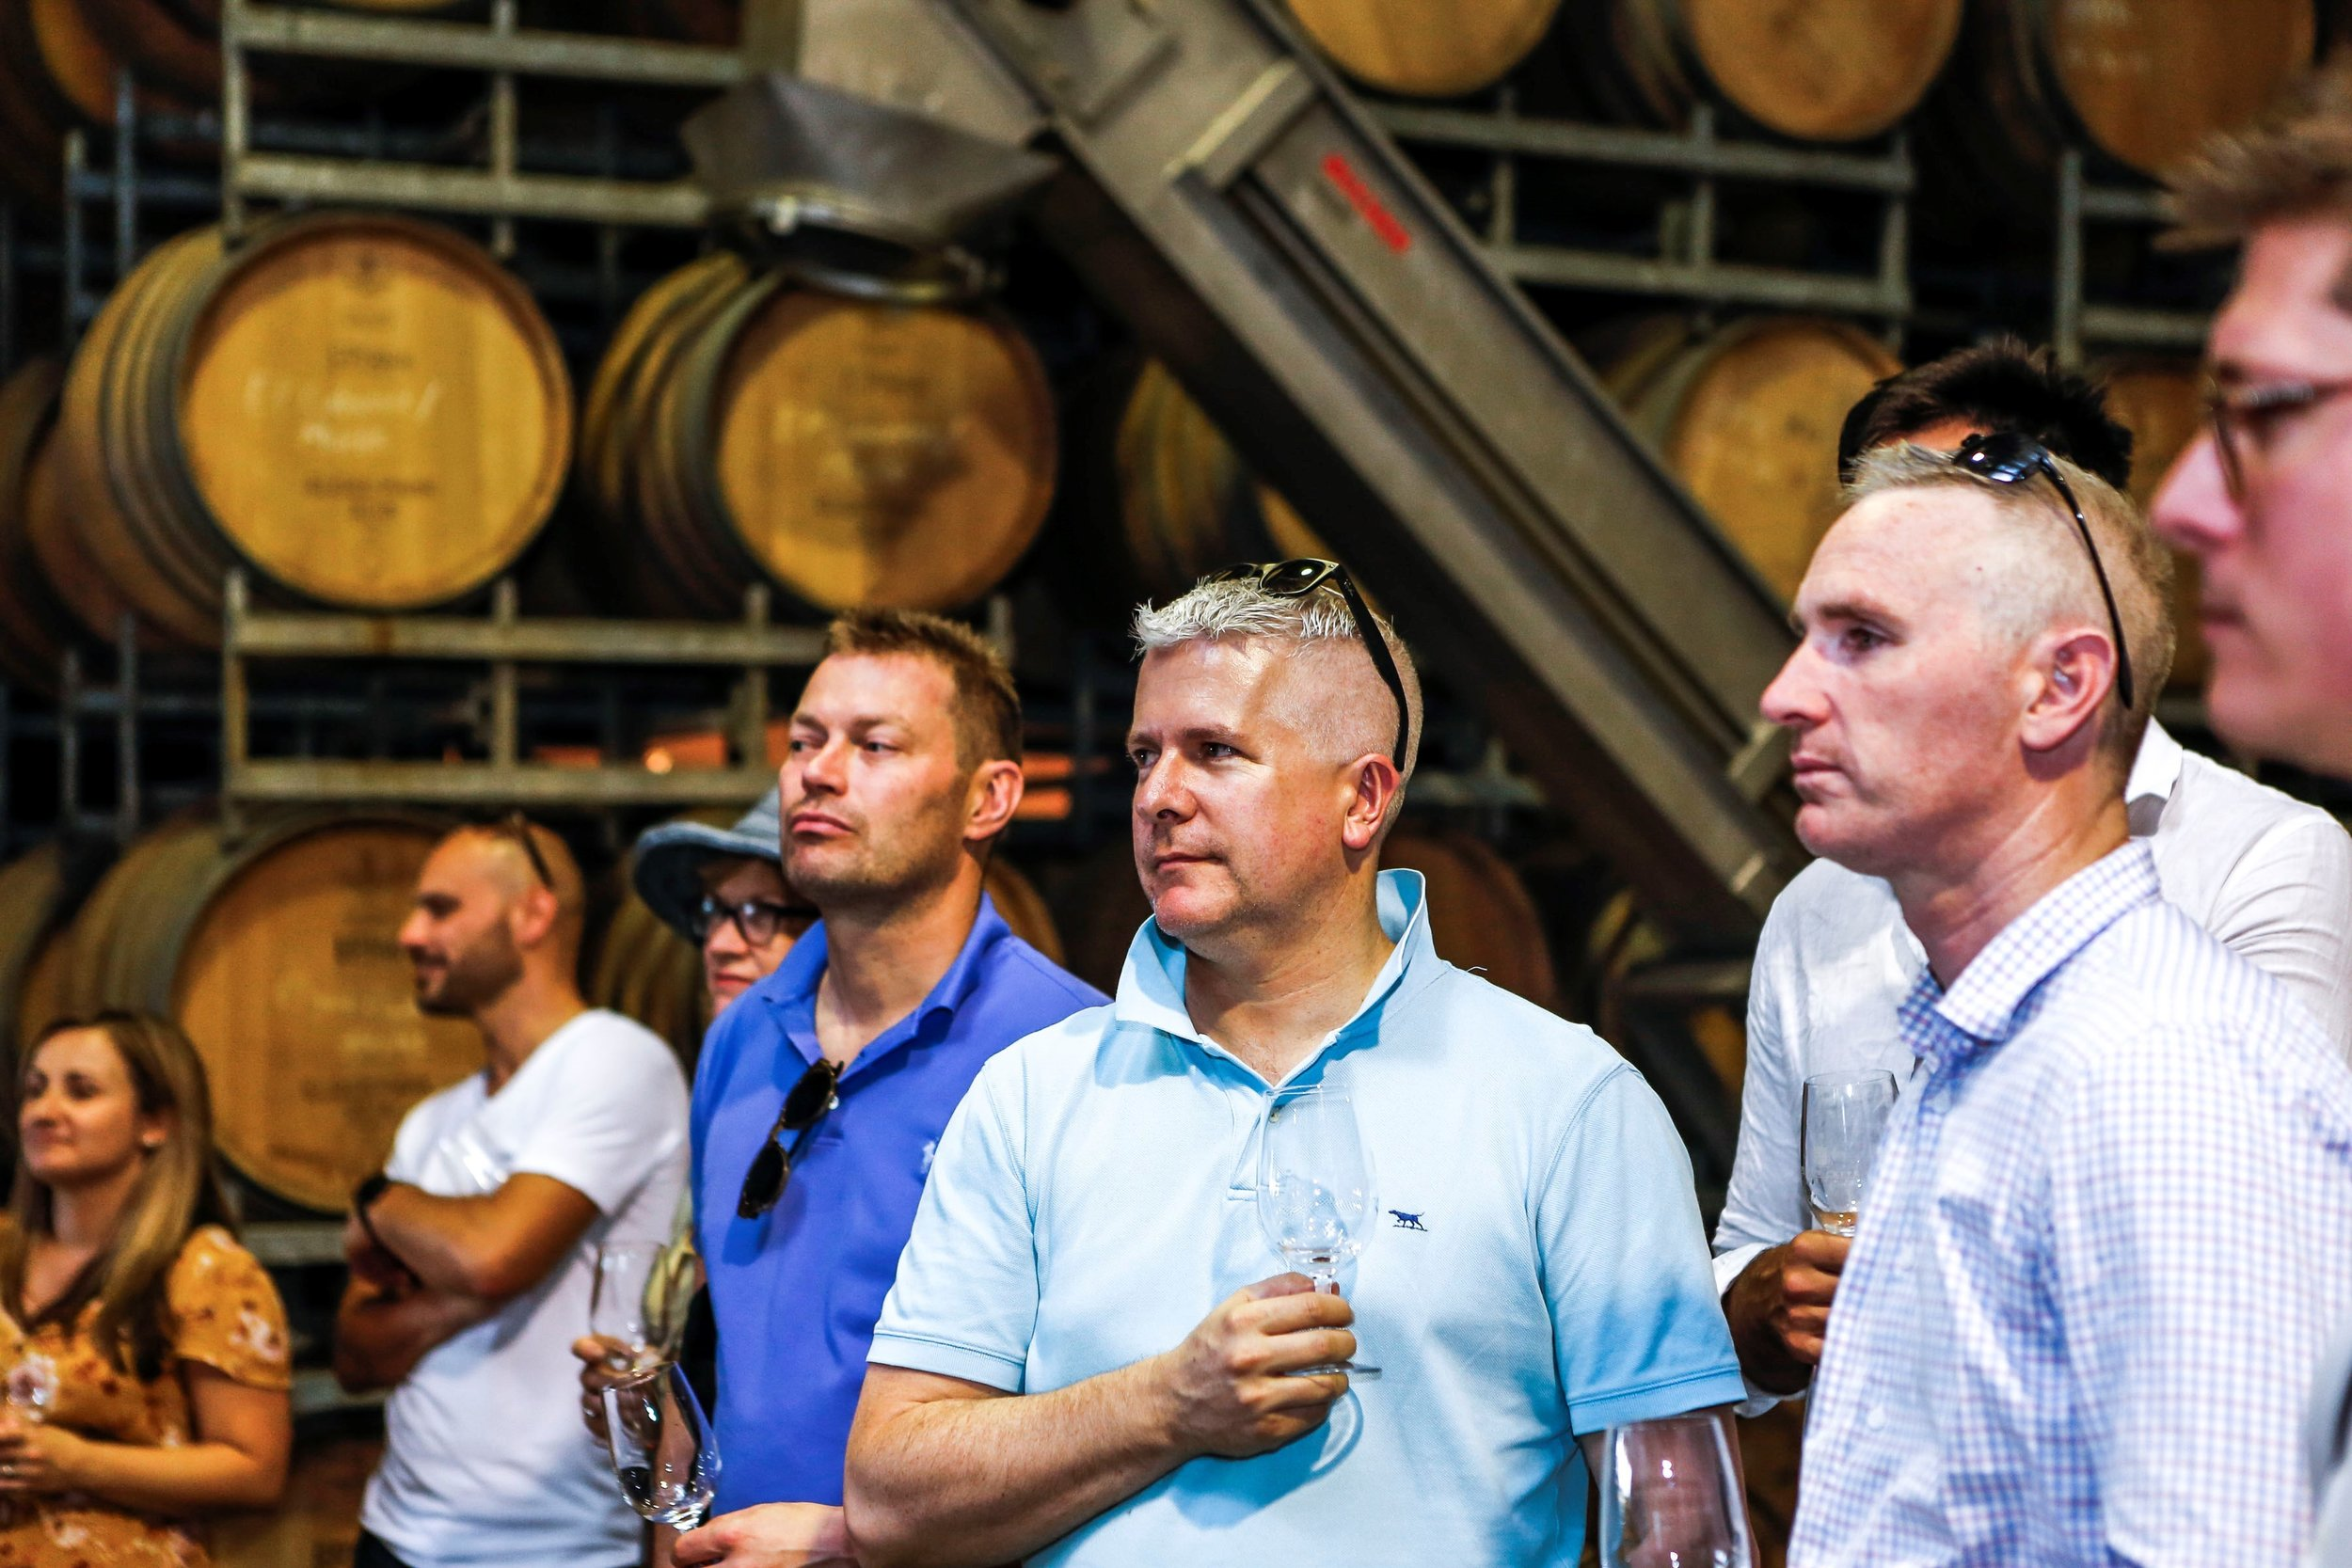 A mornington peninsula wine tour in the barrel room at Willow Creek Vineyard